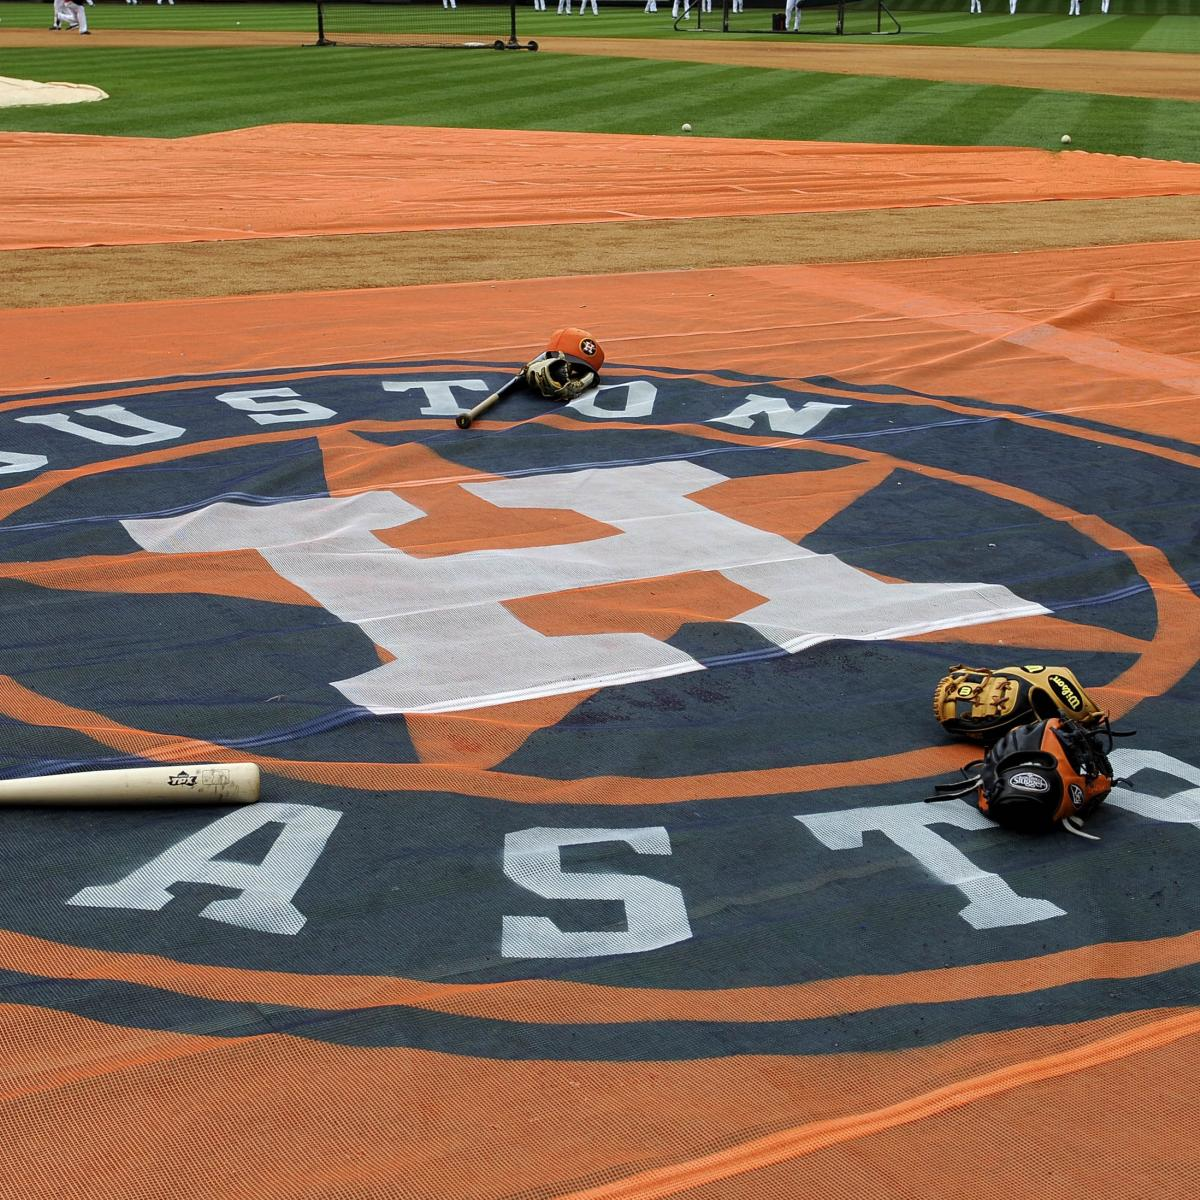 Report: MLB Would've Been 'Smoked' in Grievances Had It Punished Astros Players